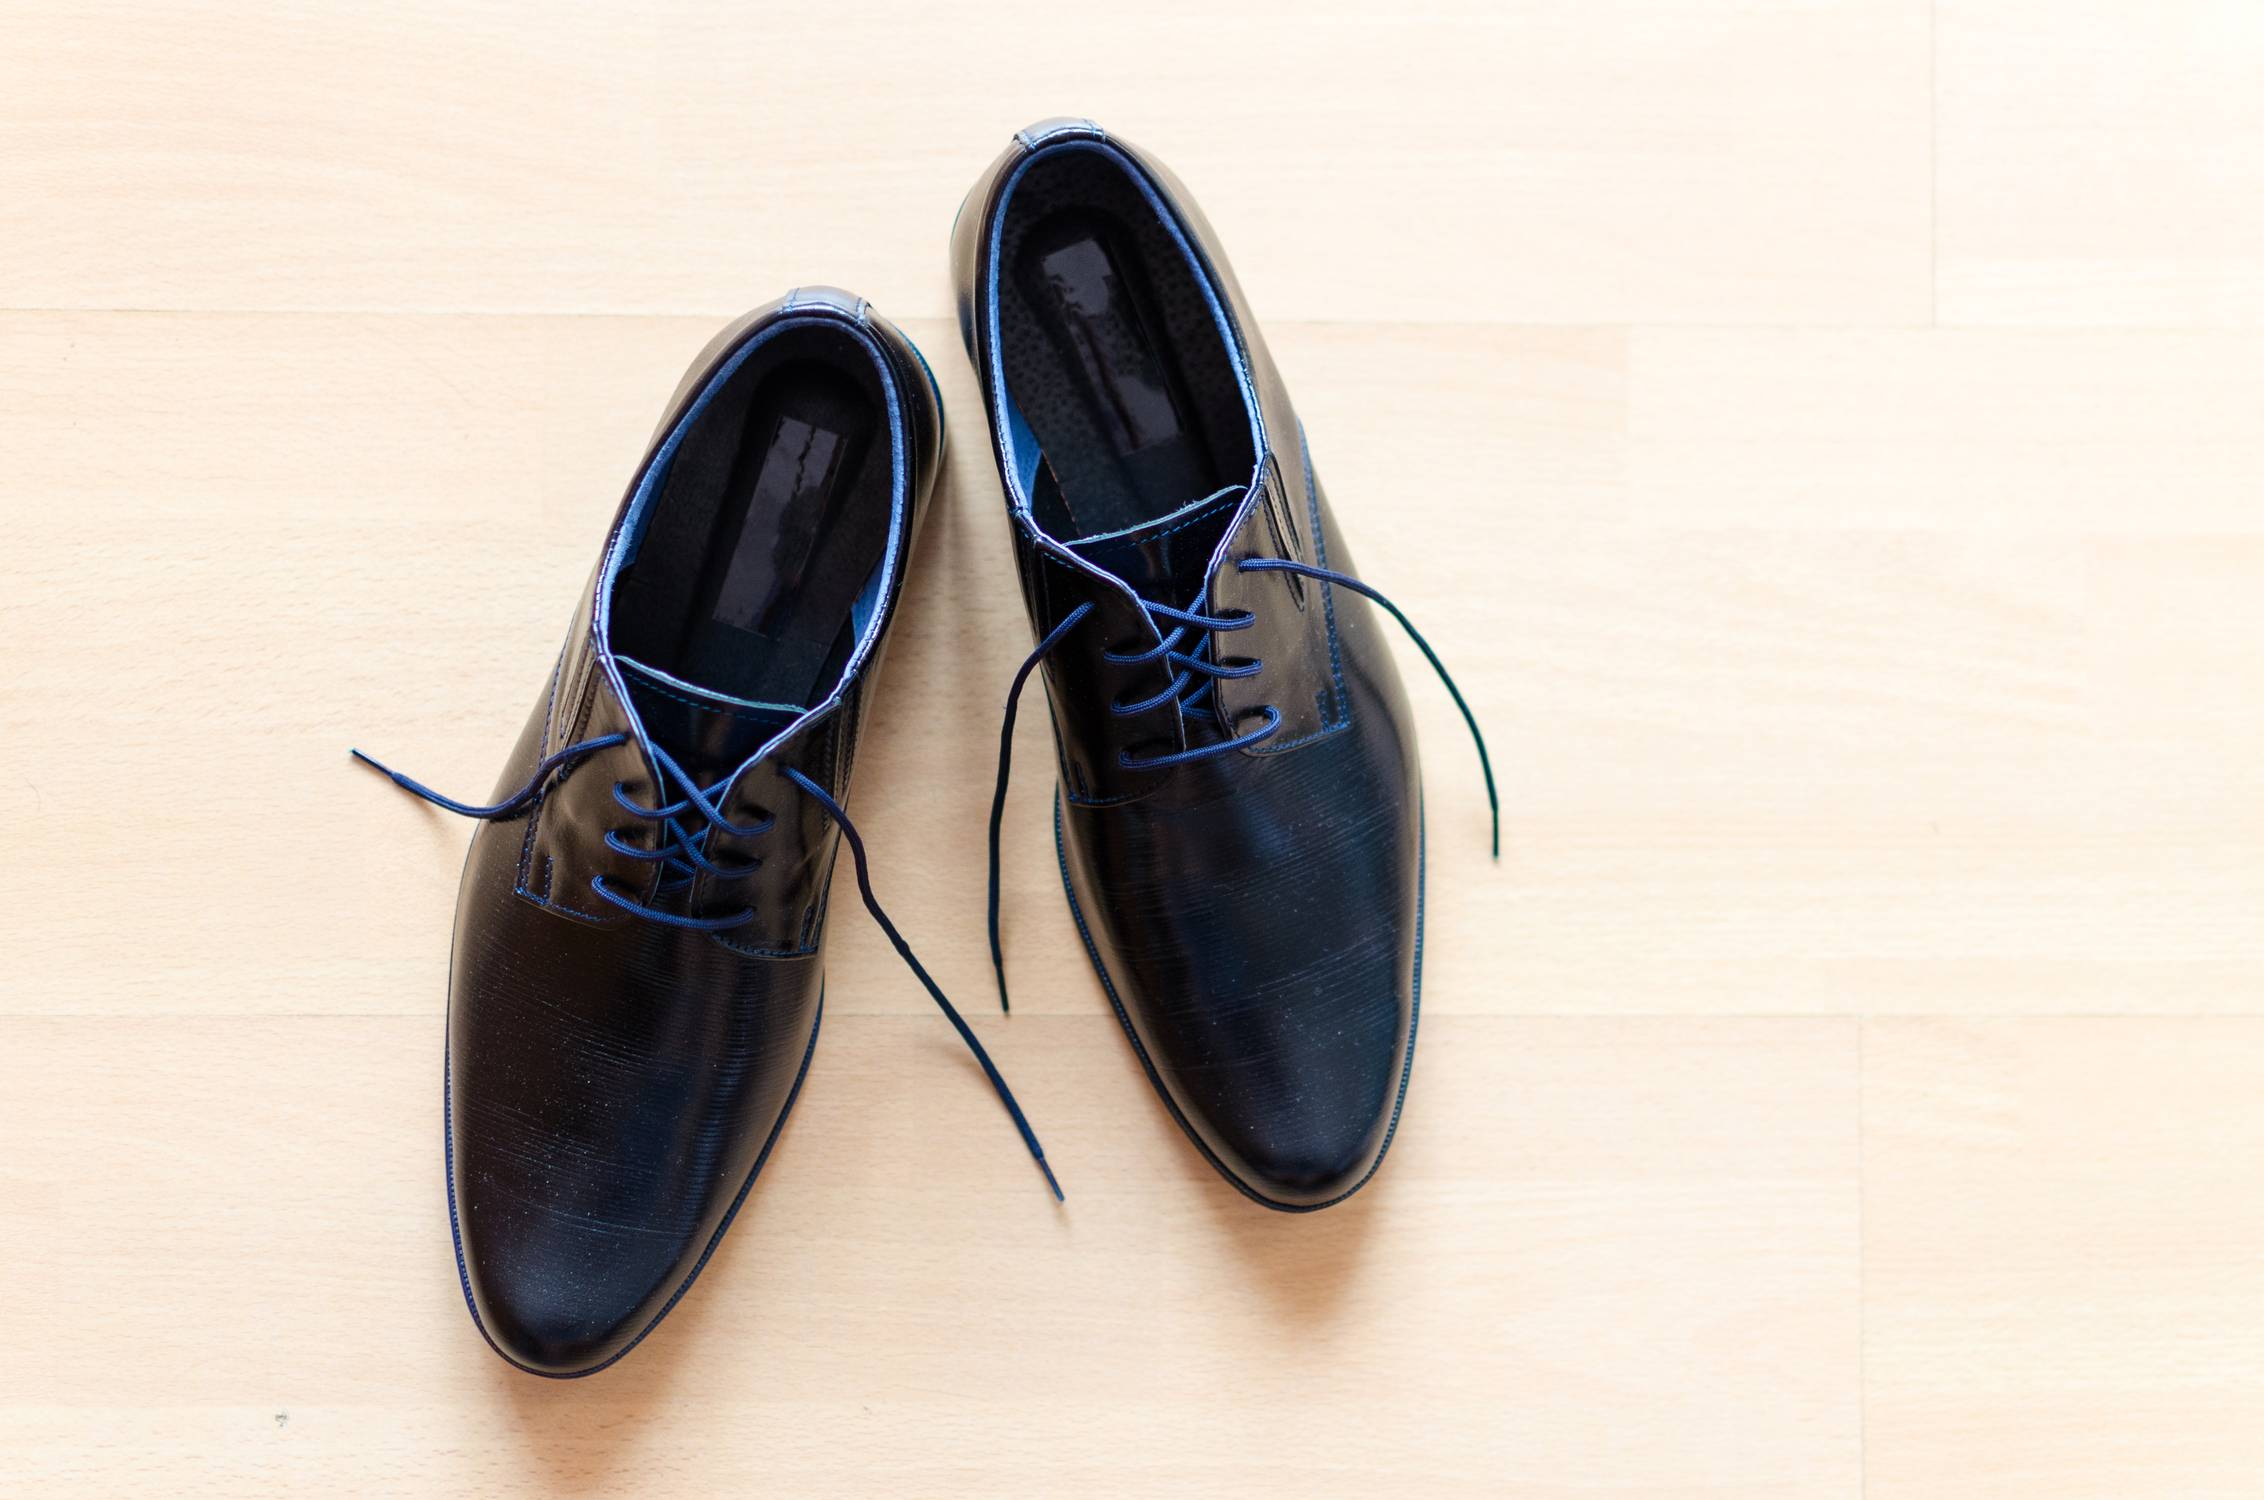 Image of shoes (served through Media Optimizer)